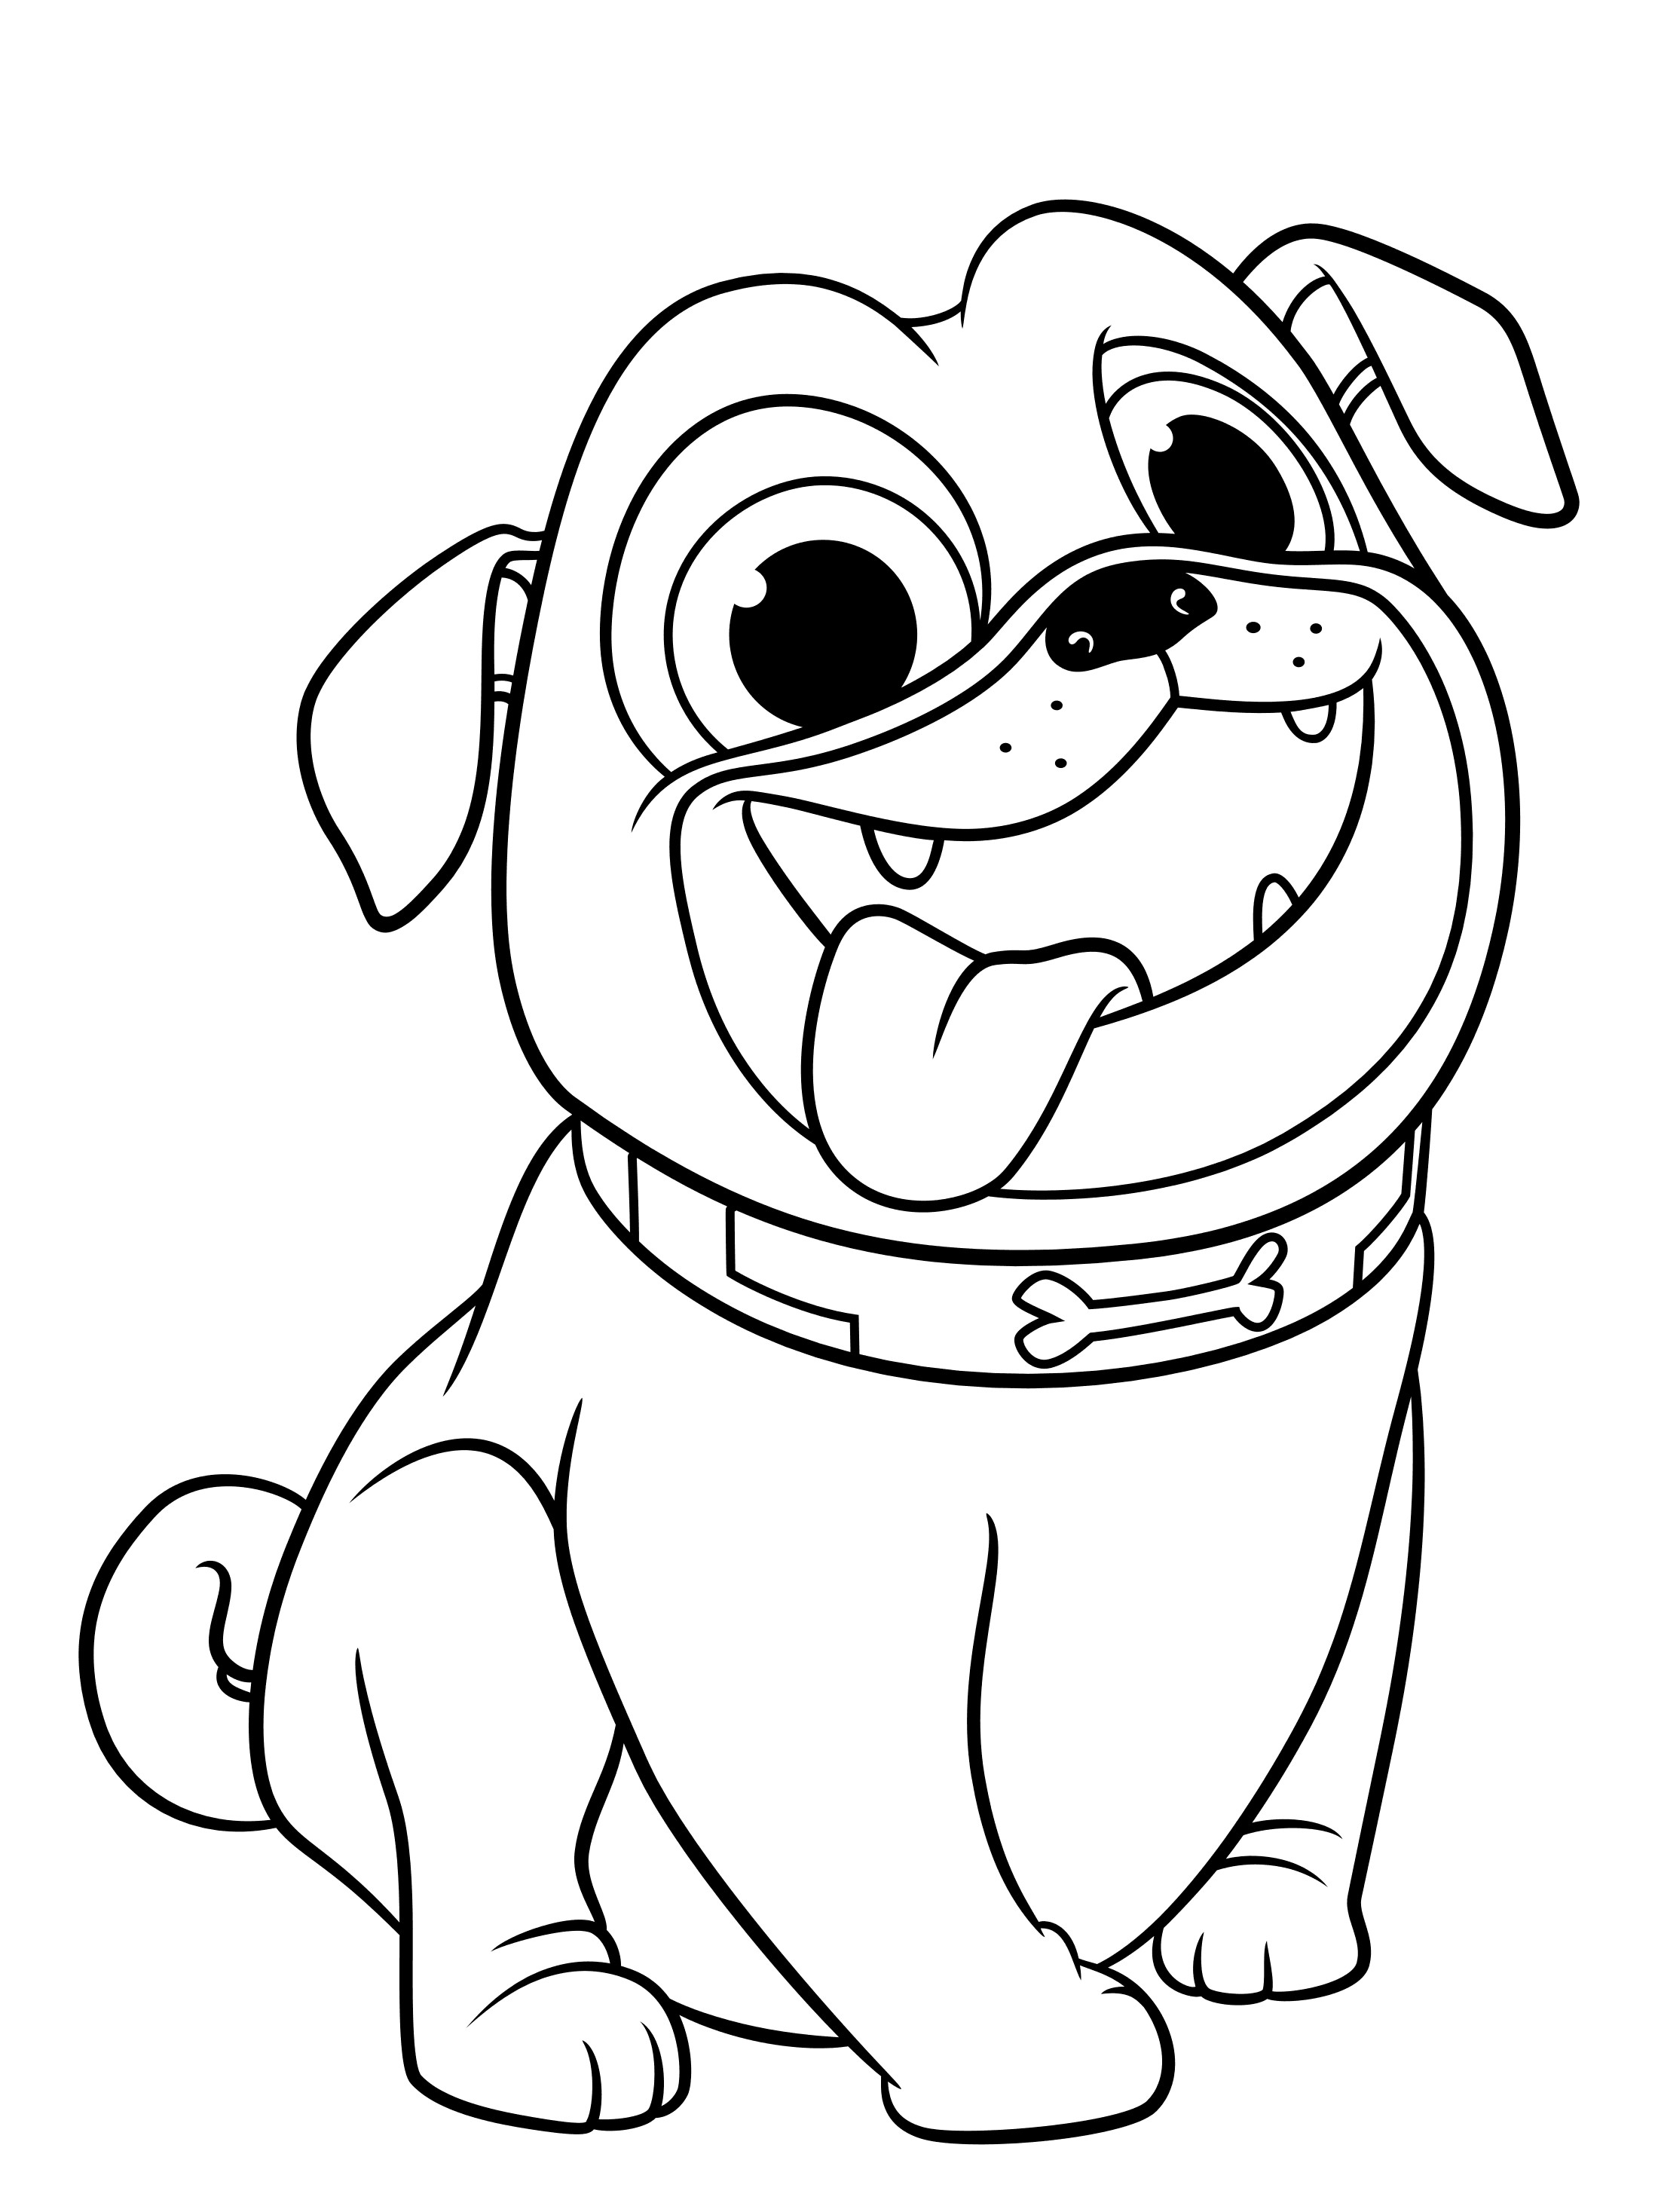 kids coloring puppy free printable puppies coloring pages for kids puppy coloring kids